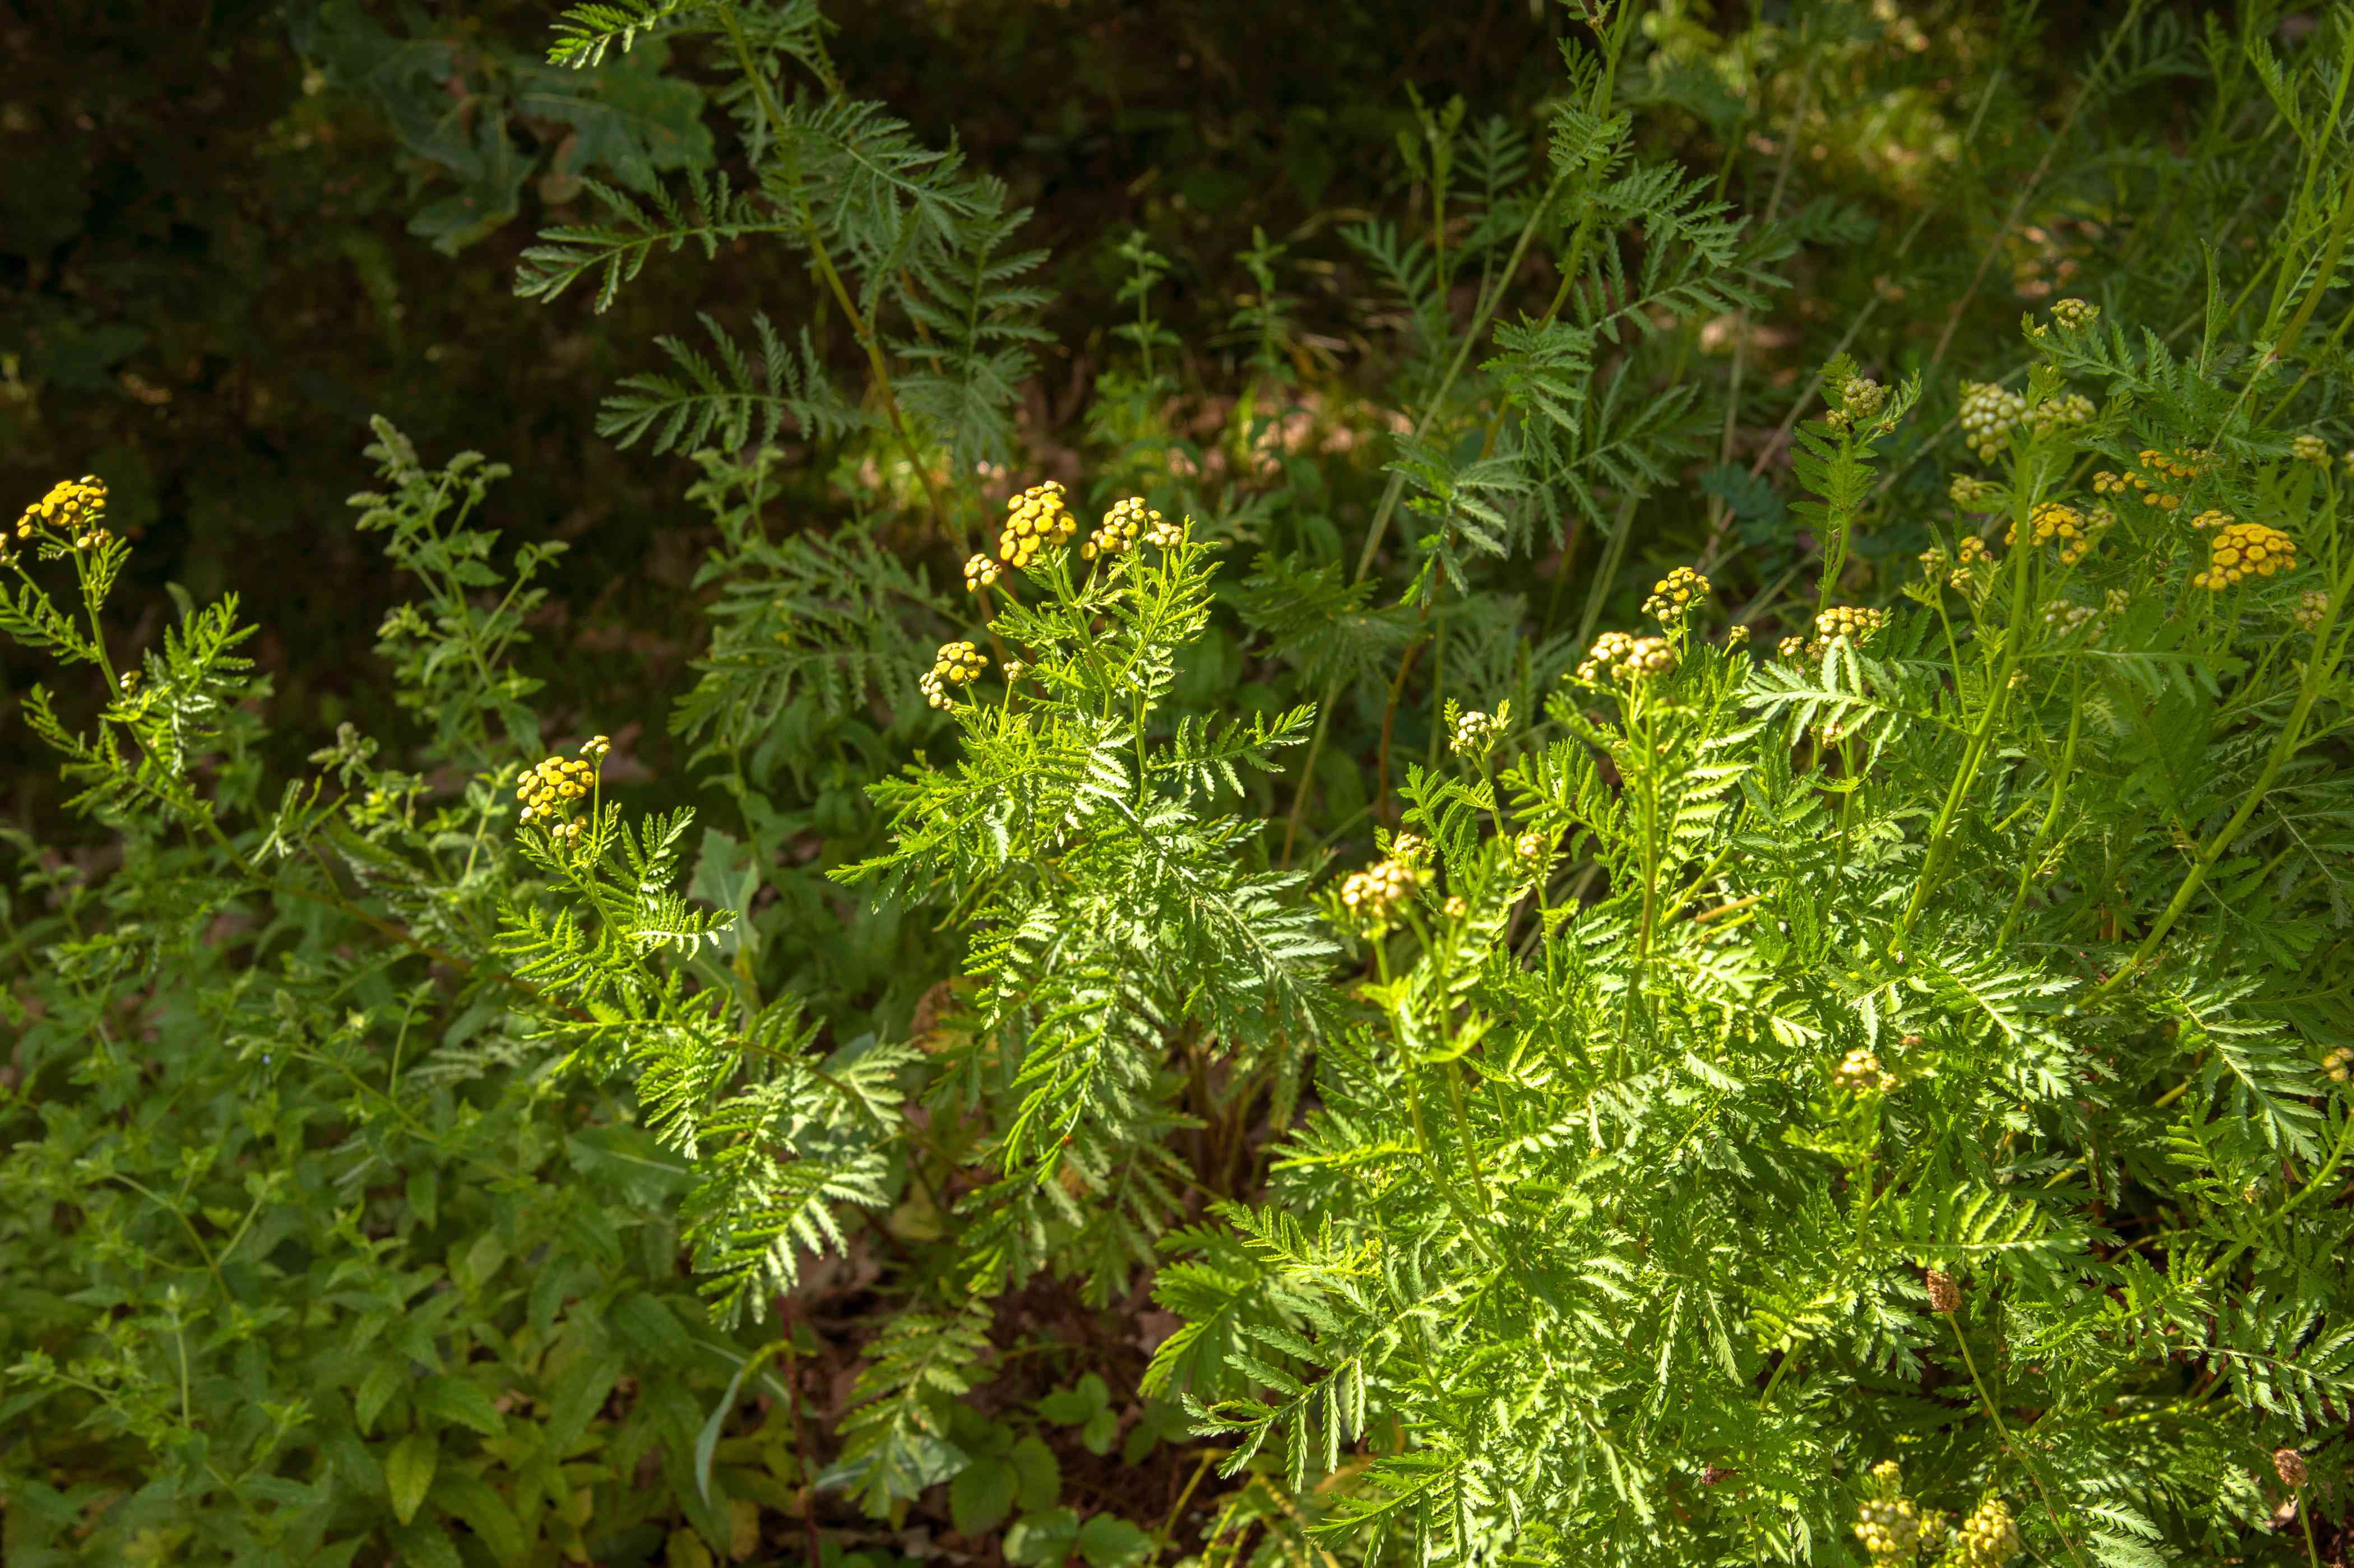 Common tansy plant with small yellow flowers on stems with fern-like leaves surrounded by foliage